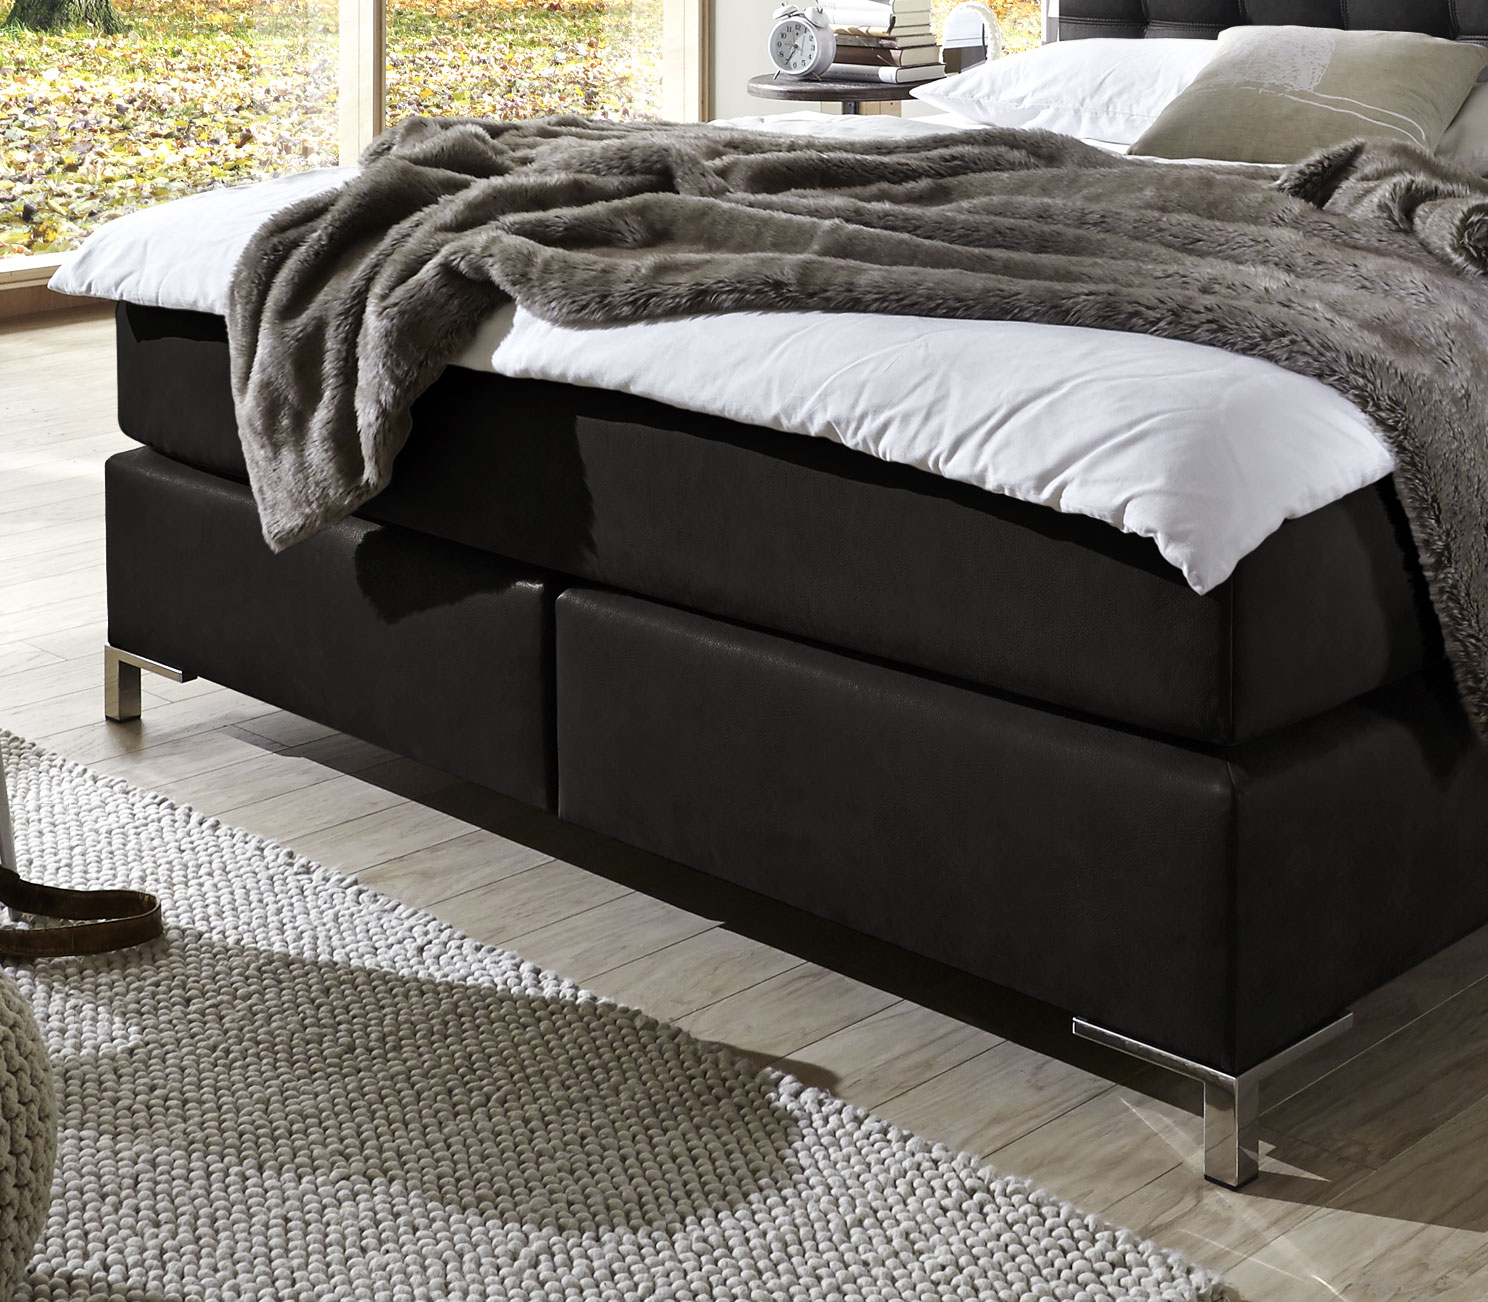 boxspringbett 90x200 mit taschenfederkern matratze zamora. Black Bedroom Furniture Sets. Home Design Ideas